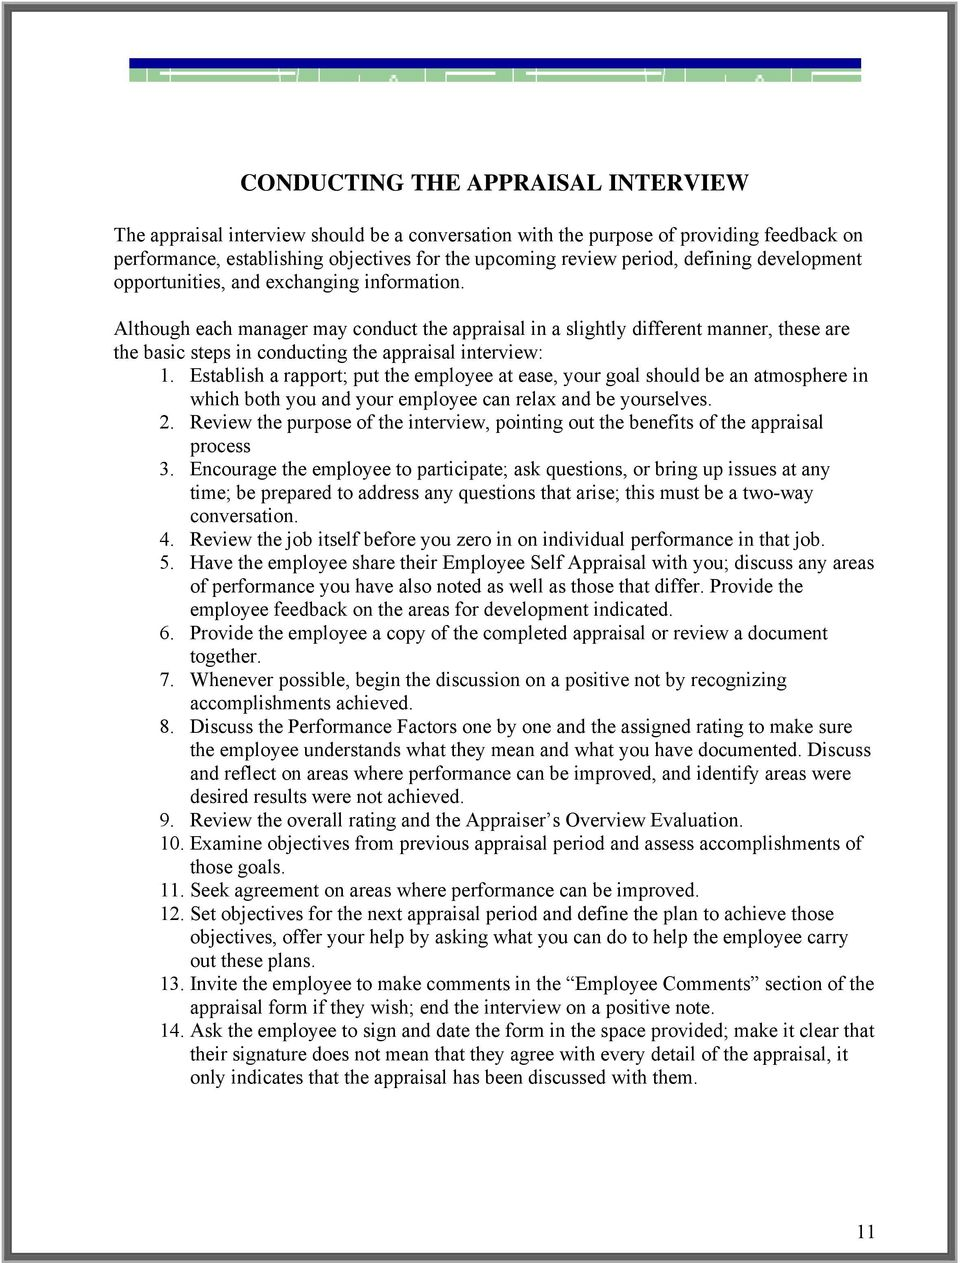 Although each manager may conduct the appraisal in a slightly different manner, these are the basic steps in conducting the appraisal interview: 1.